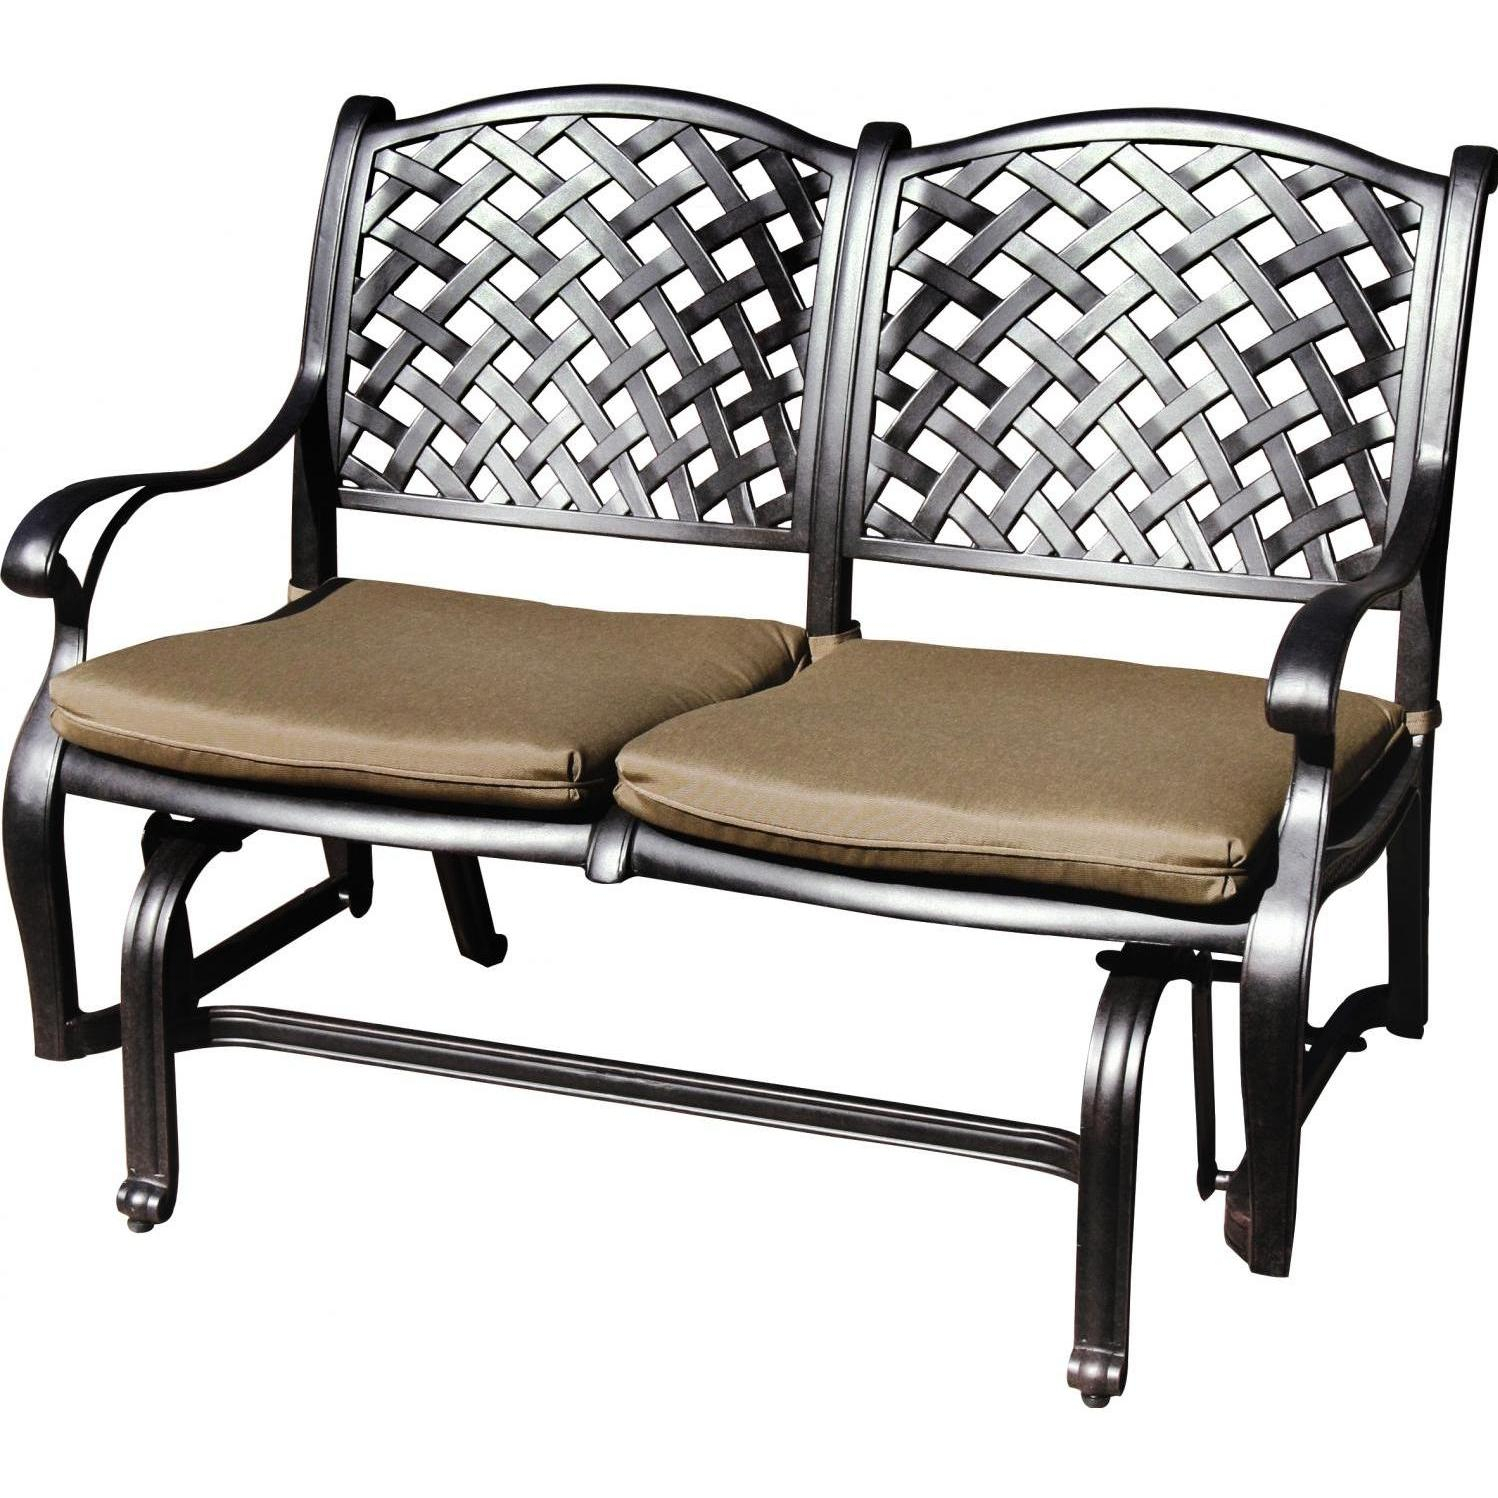 Darlee Nassau Cast Aluminum Patio Bench Glider Pertaining To 2 Person Antique Black Iron Outdoor Gliders (Image 9 of 25)